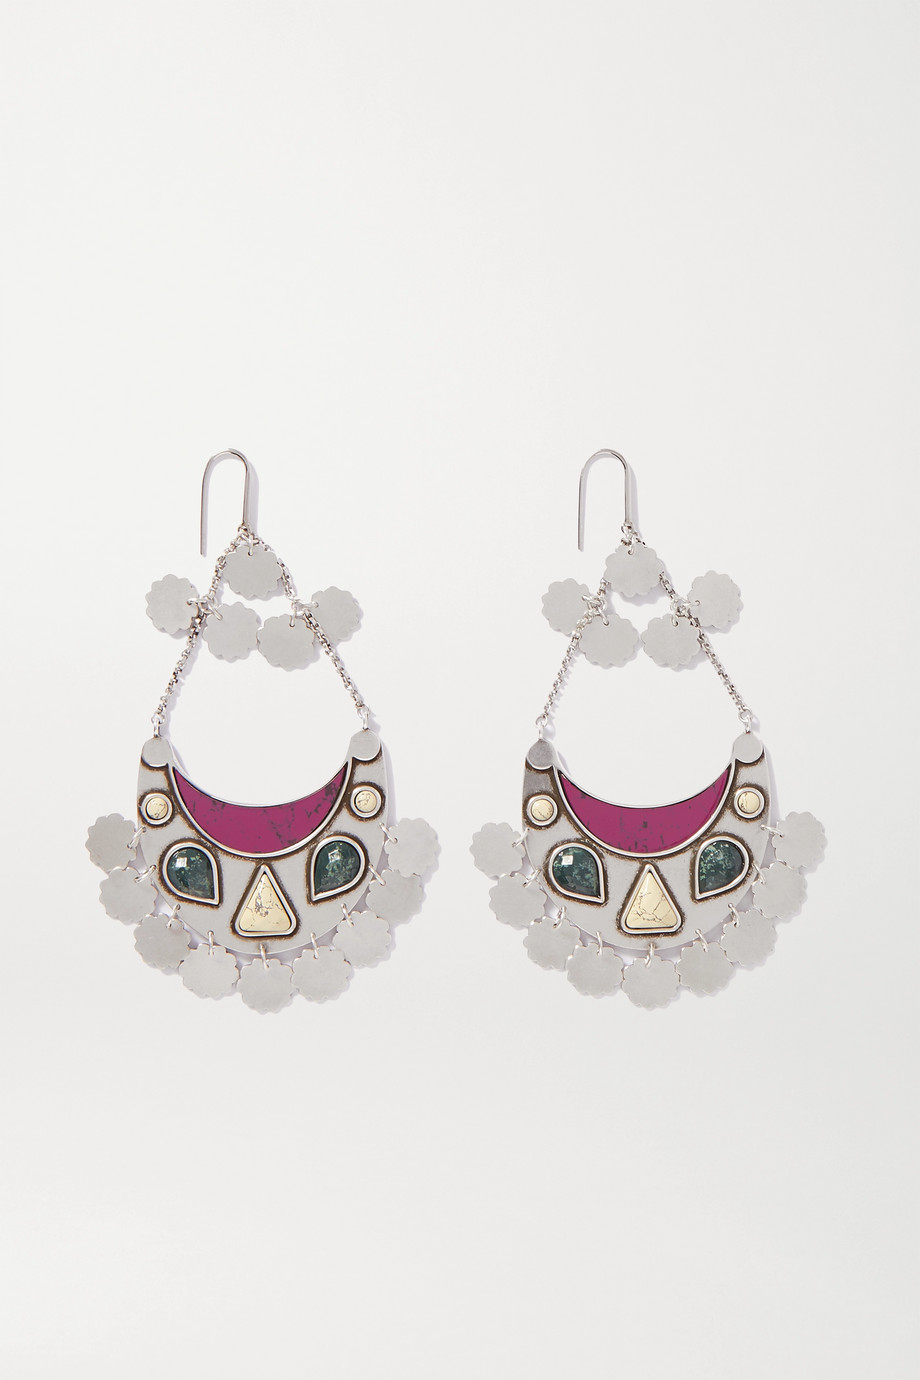 Isabel Marant Move Your Body silver-tone and resin earrings